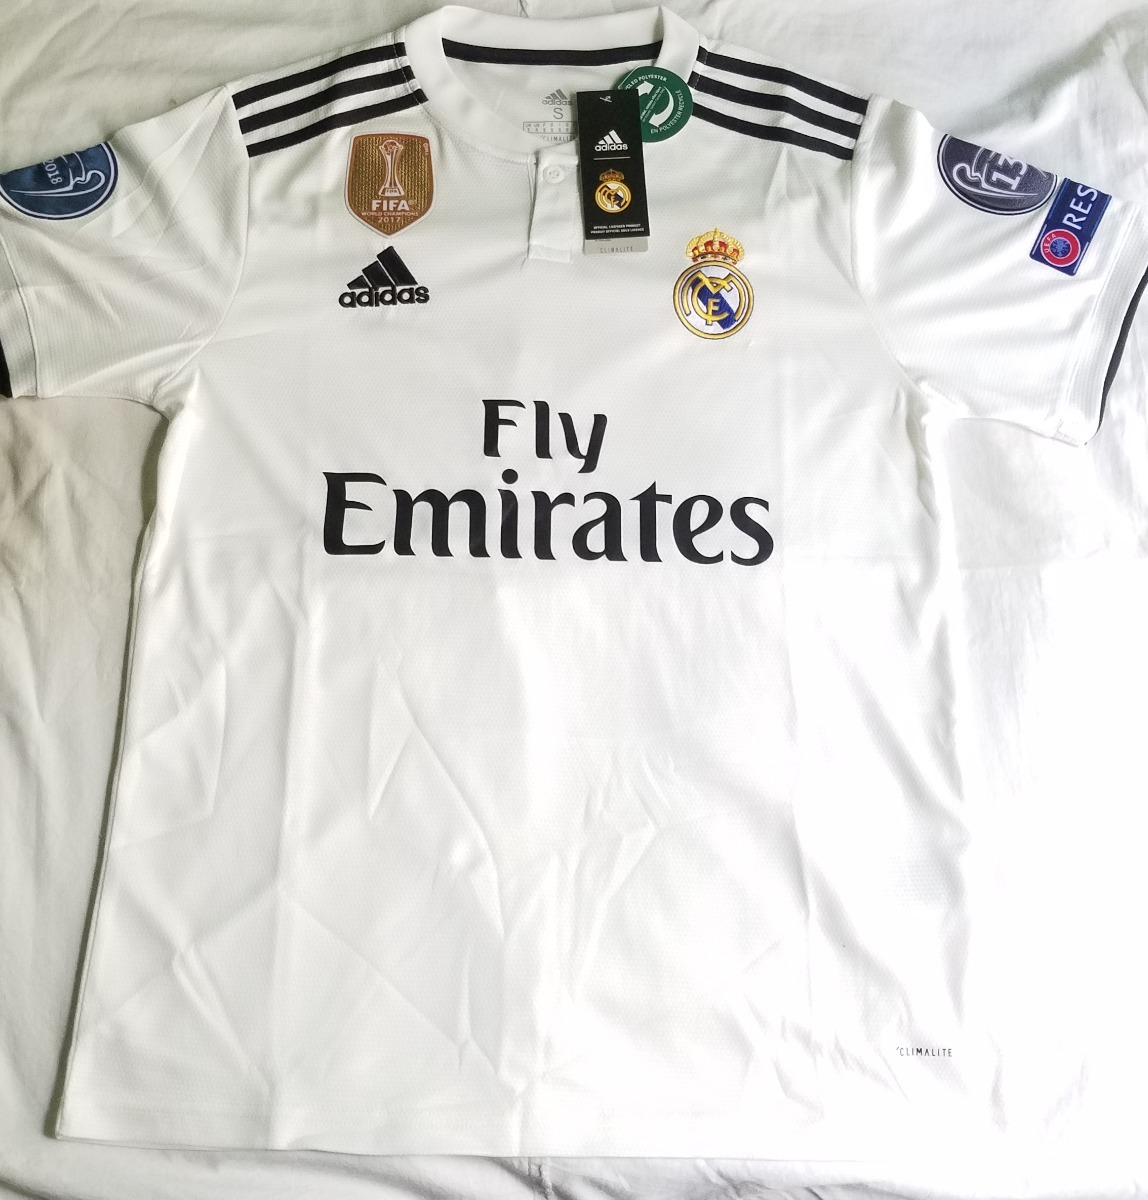 Jersey real madrid champions league cargando zoom jpg 1148x1200 Real madrid  2018 2019 338d7533a4381